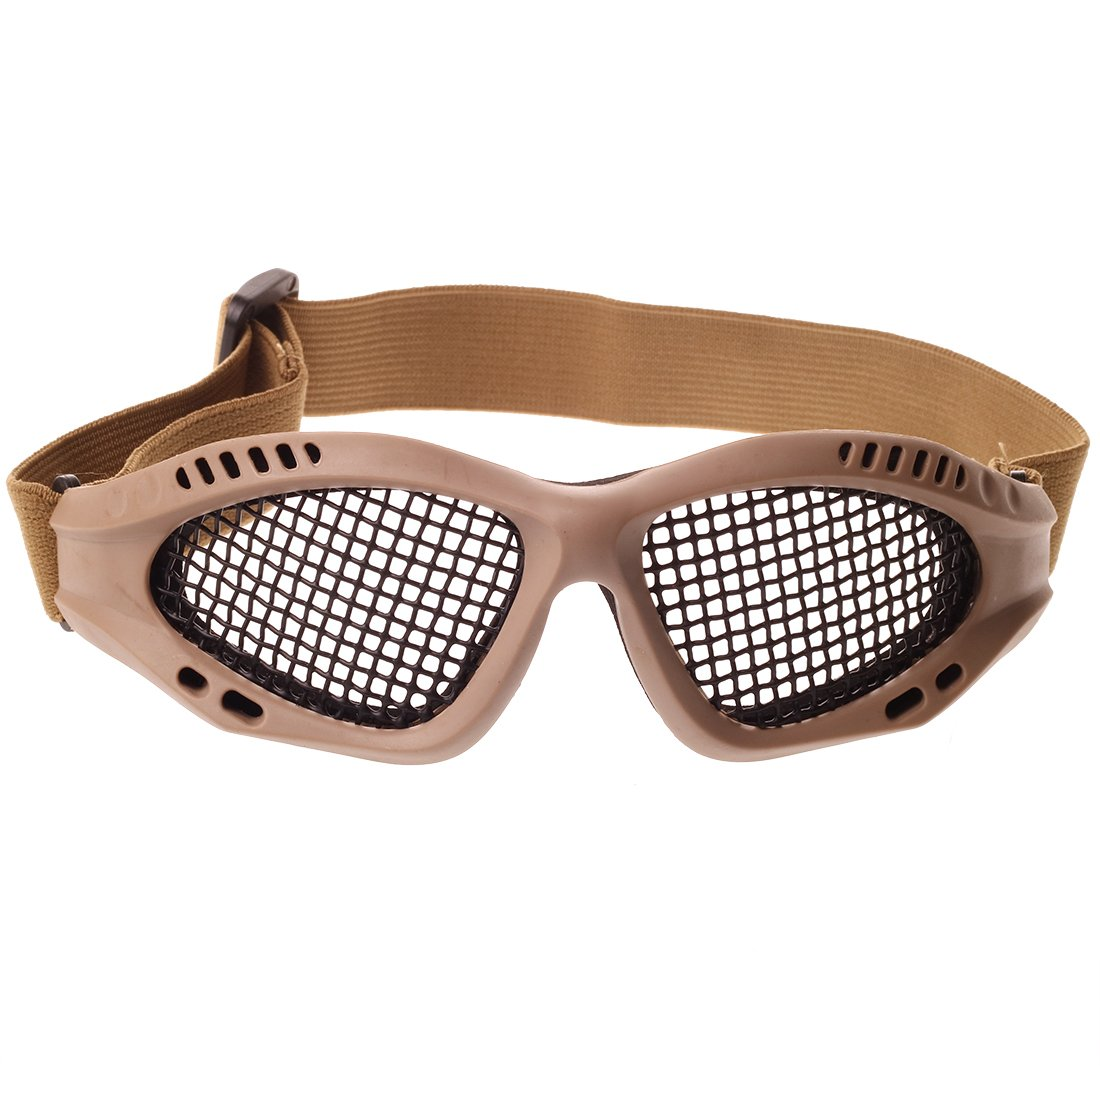 Yapeach Mesh Net Eyes Protector Glasses, Safety Eye Protection for Outdoor Sports Wood color